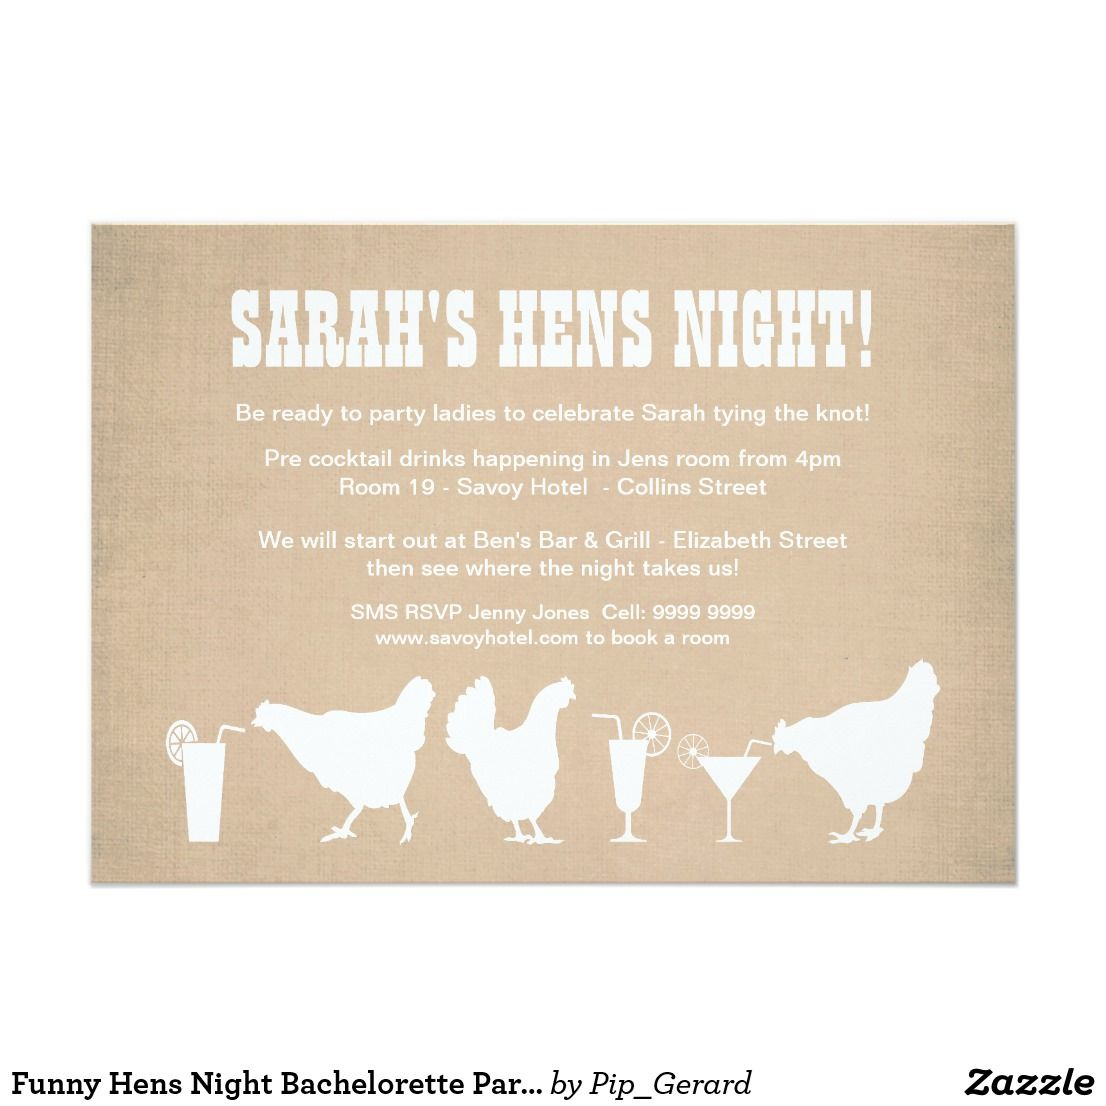 Funny Hens Night Games